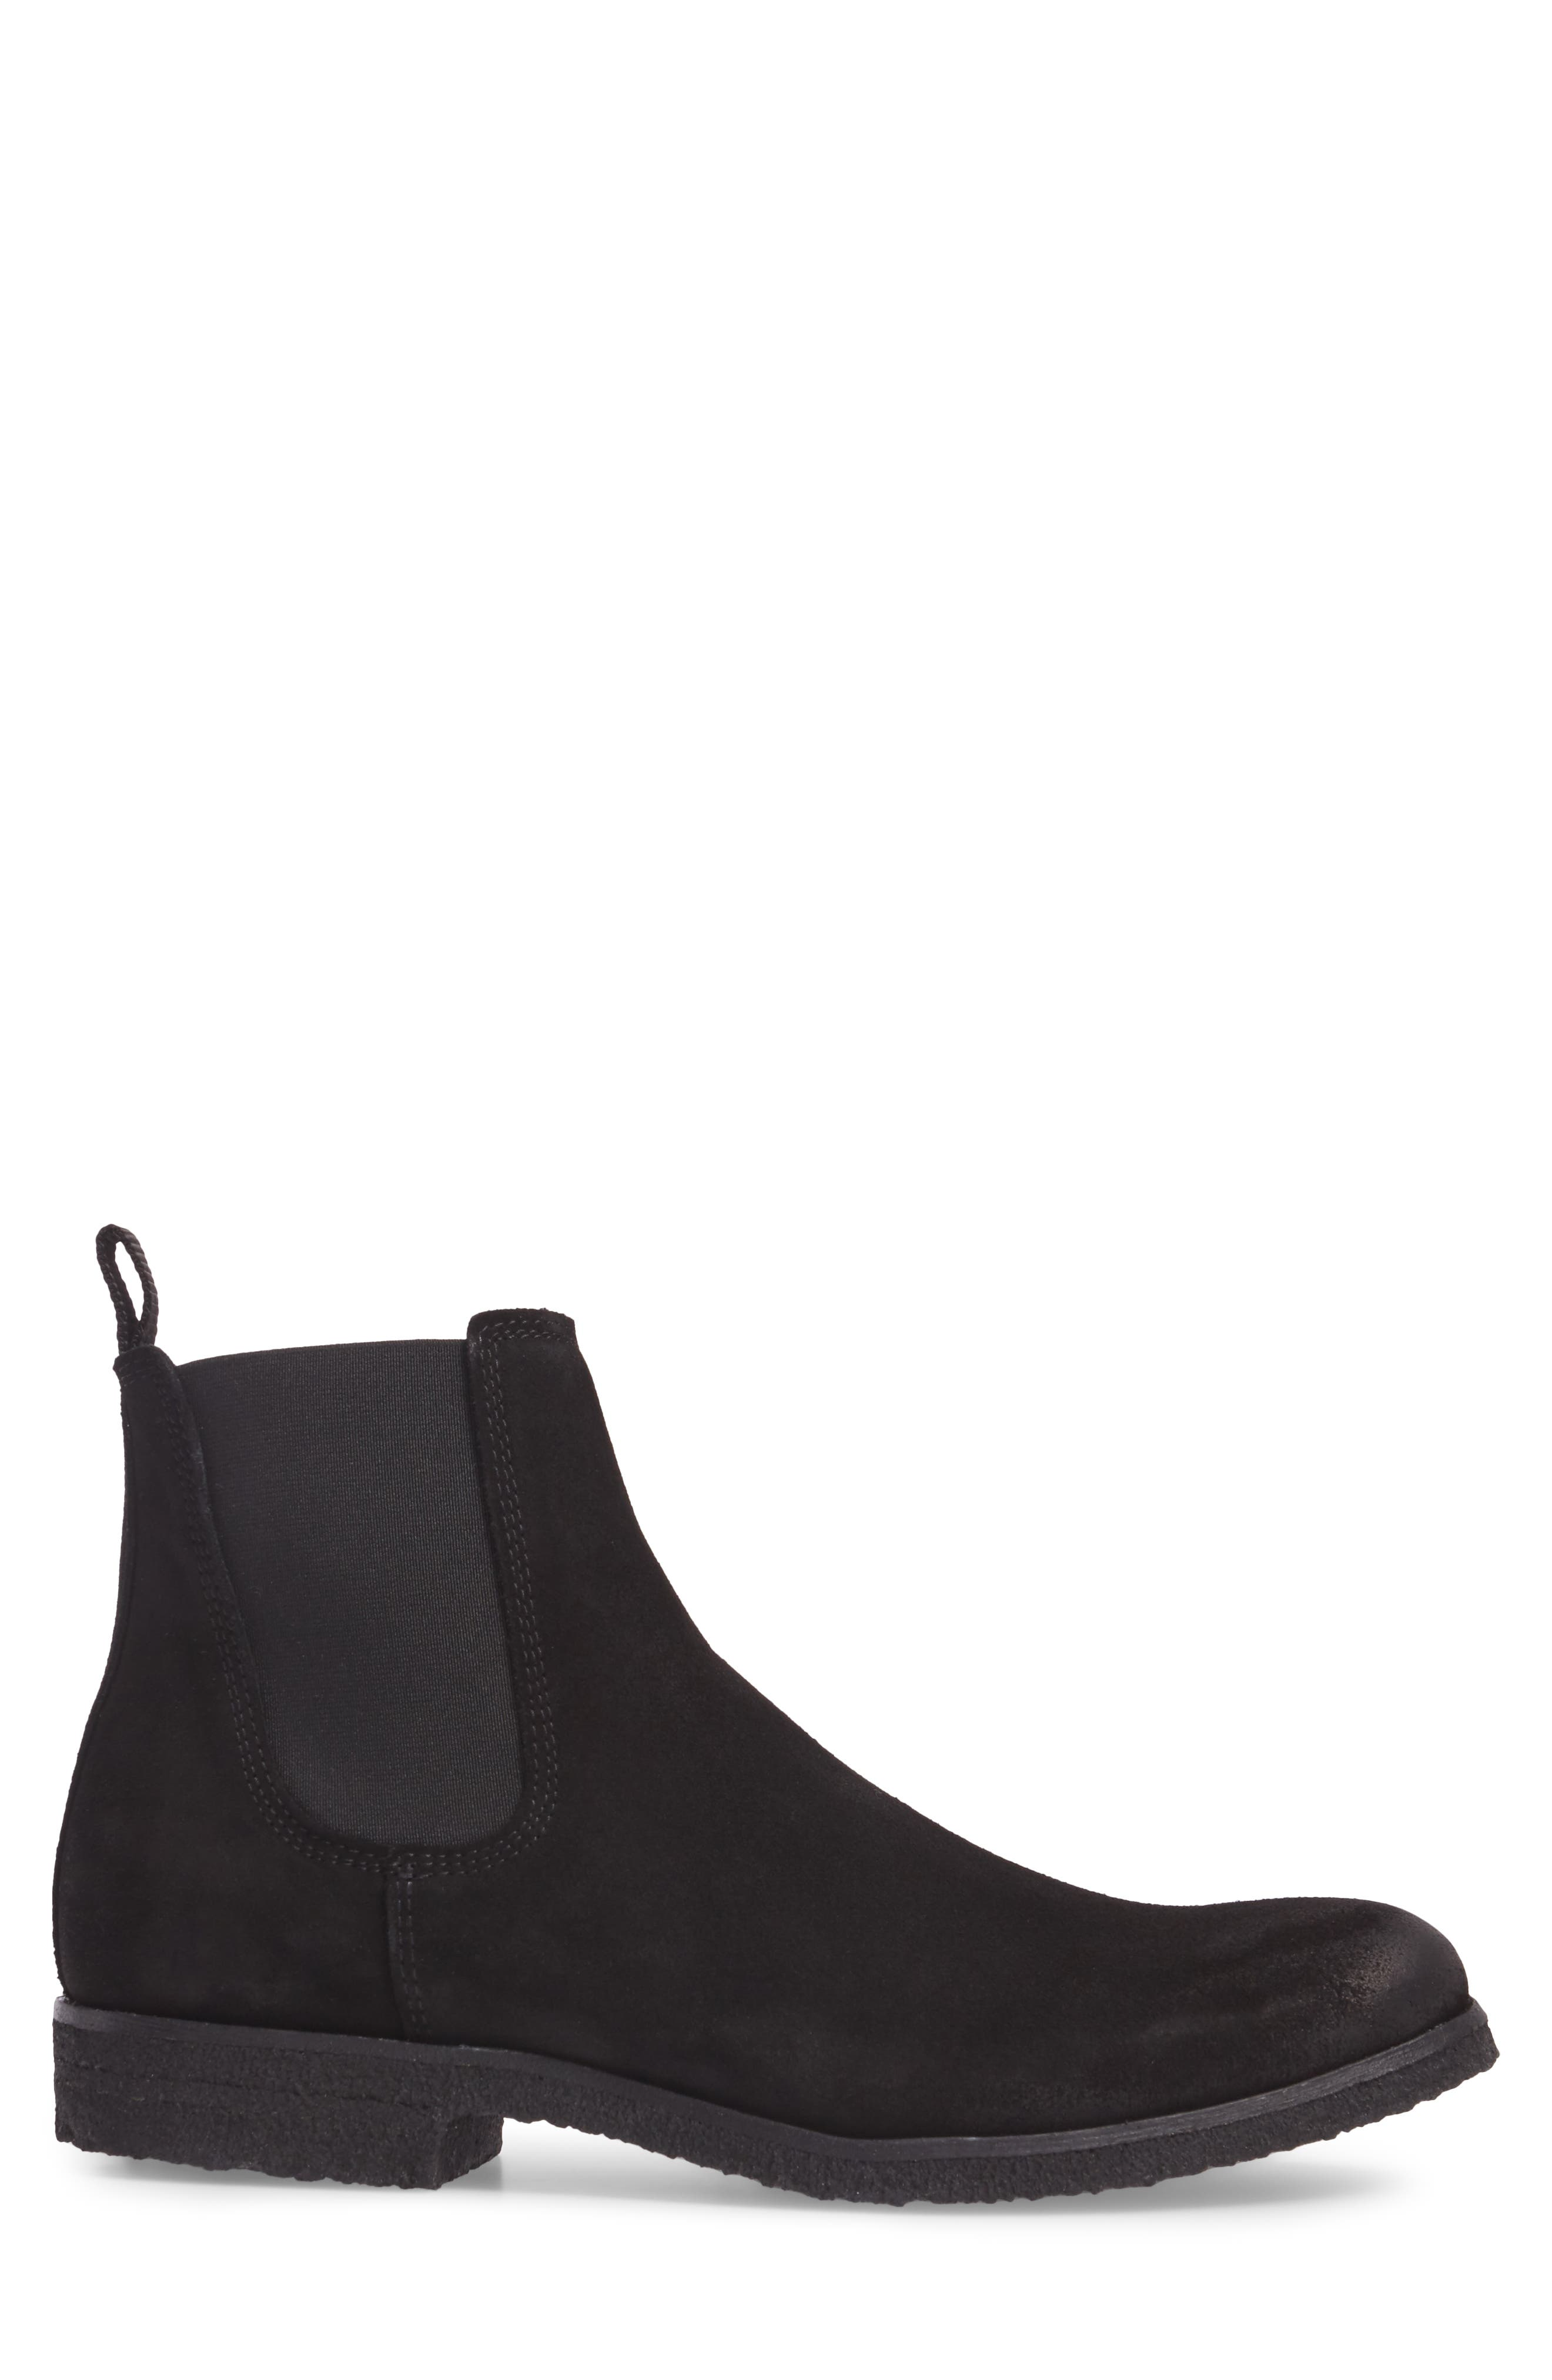 SUPPLY LAB,                             Jared Chelsea Boot,                             Alternate thumbnail 3, color,                             002